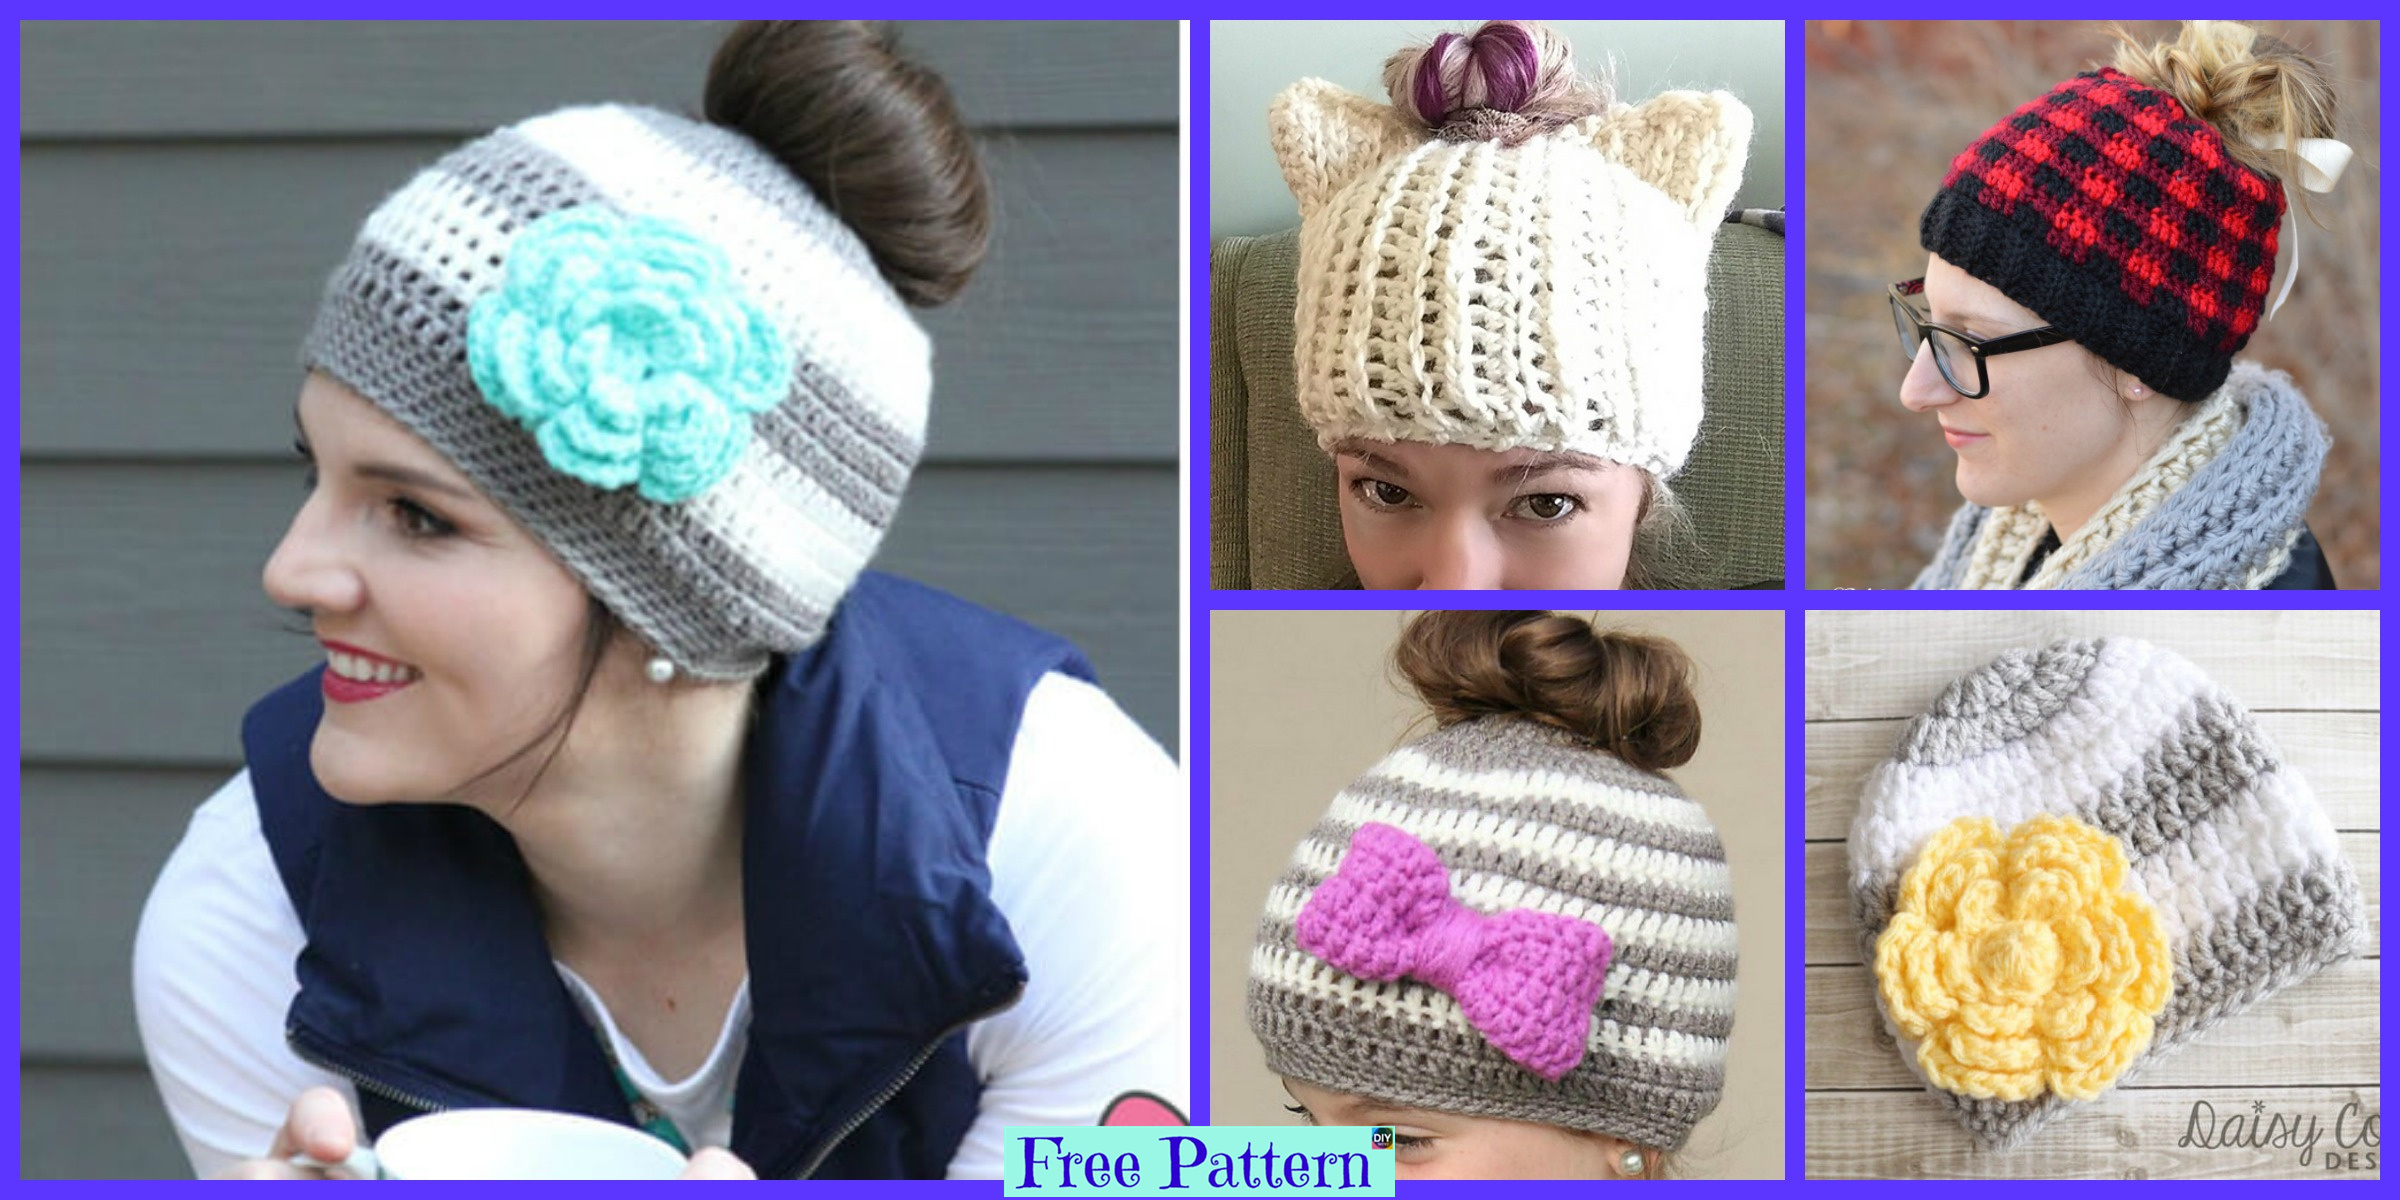 8 Crochet Messy Bun Hat Free Patterns